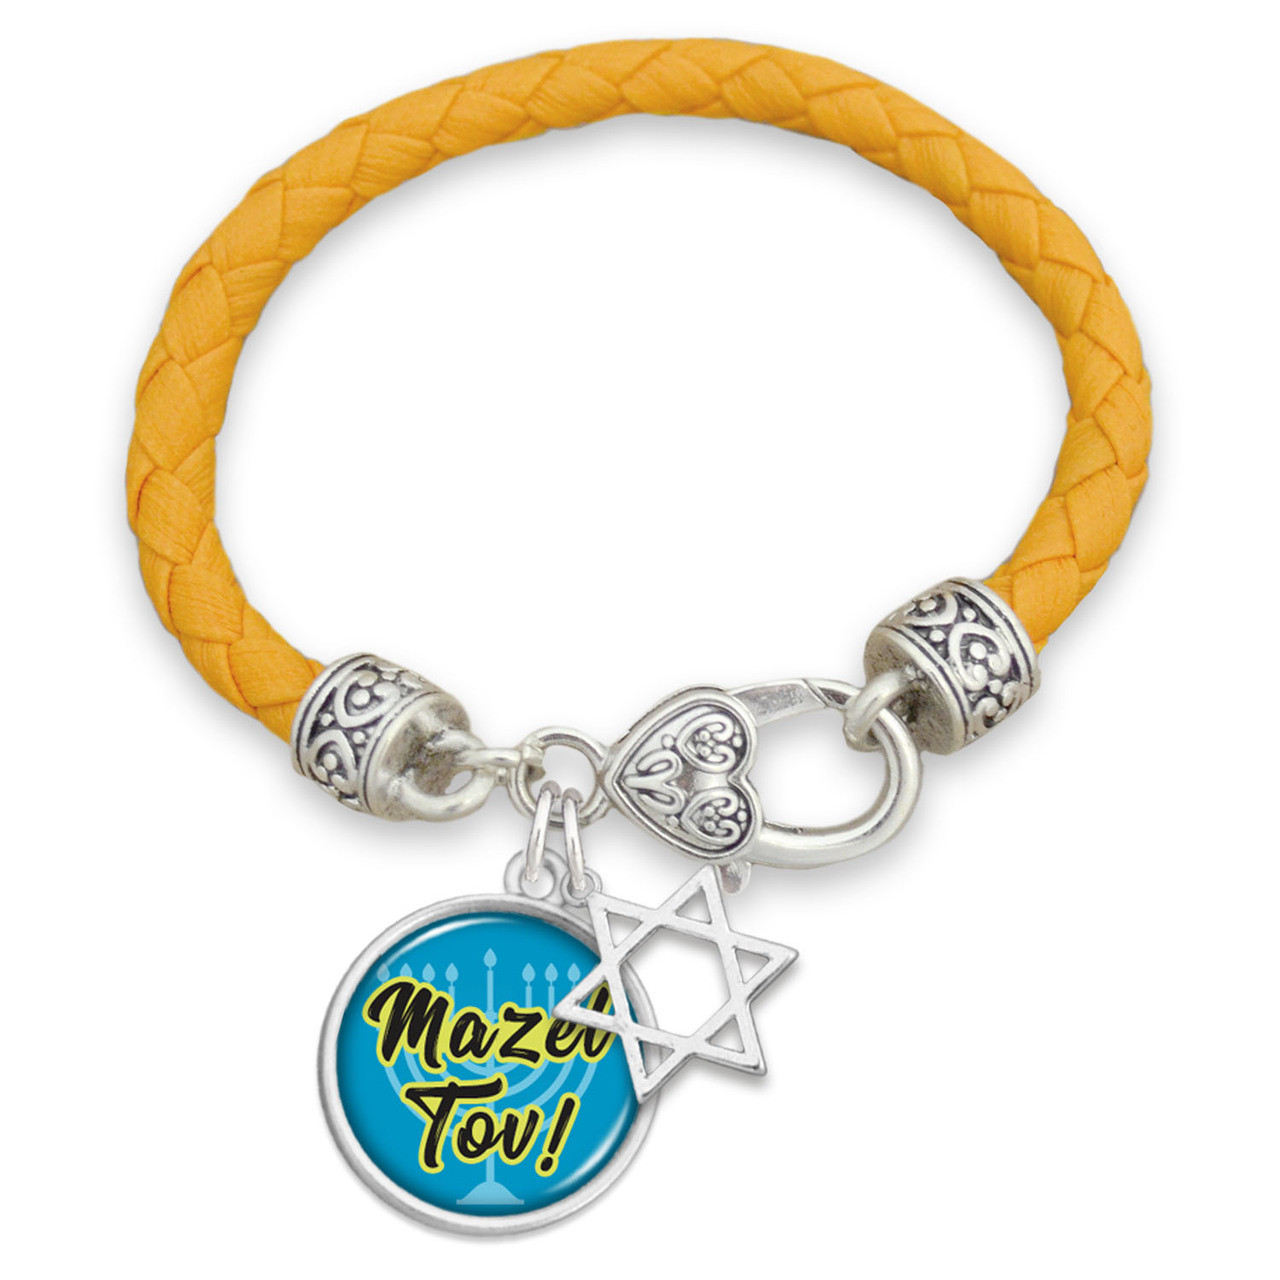 Mazel Tov Leather Bracelet